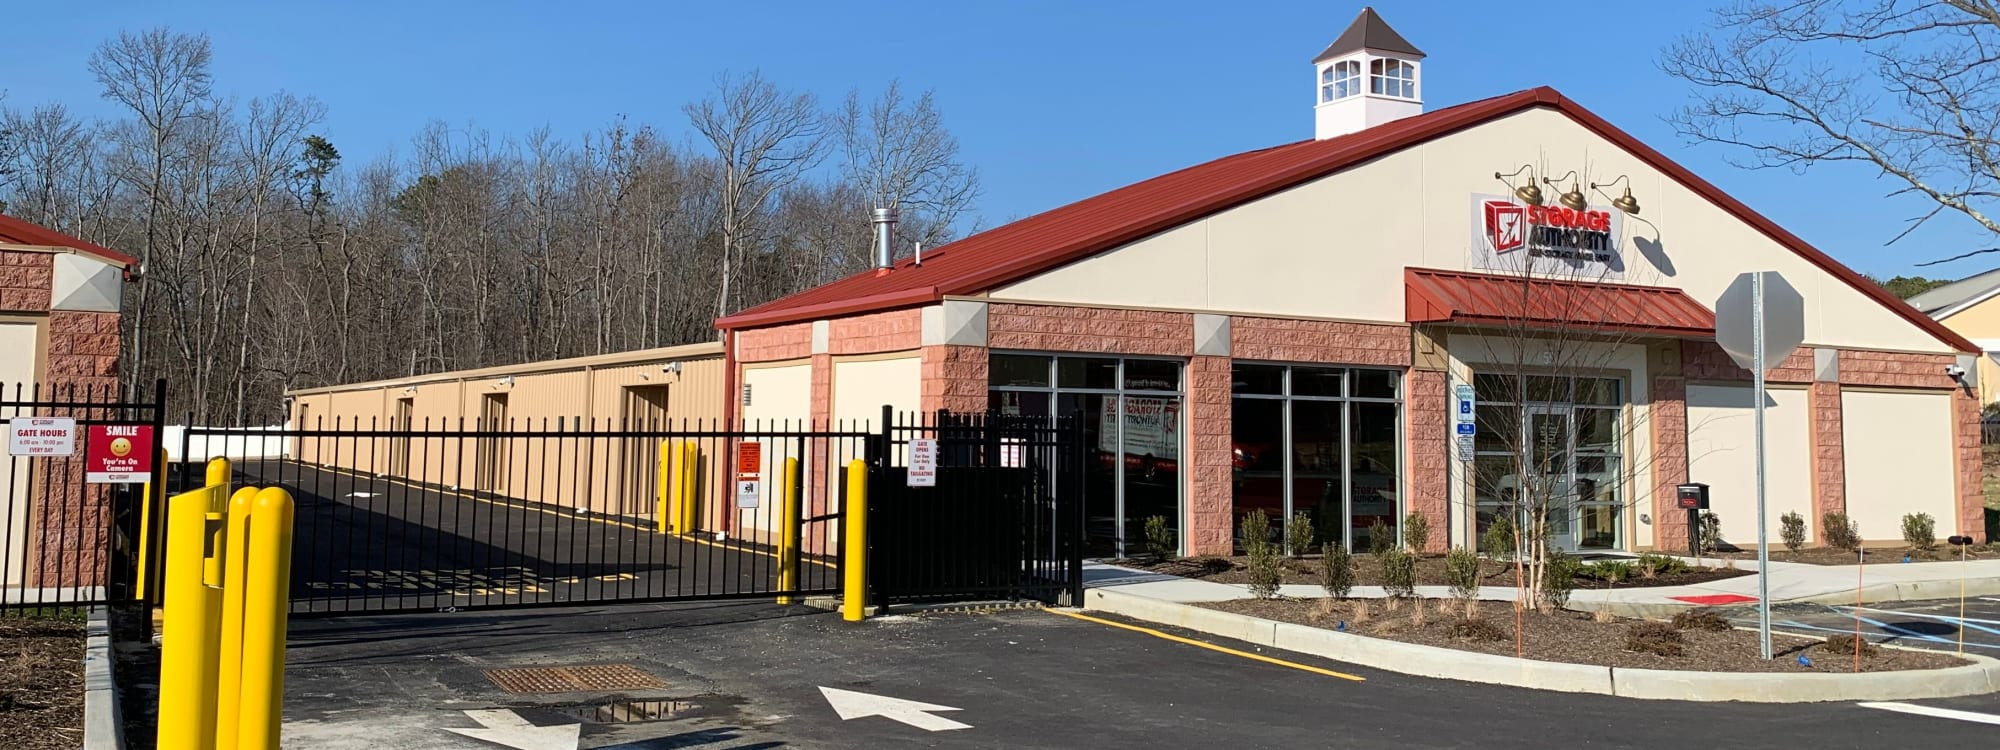 Self storage at Storage Authority Monmouth Rd in Millstone Township, New Jersey.